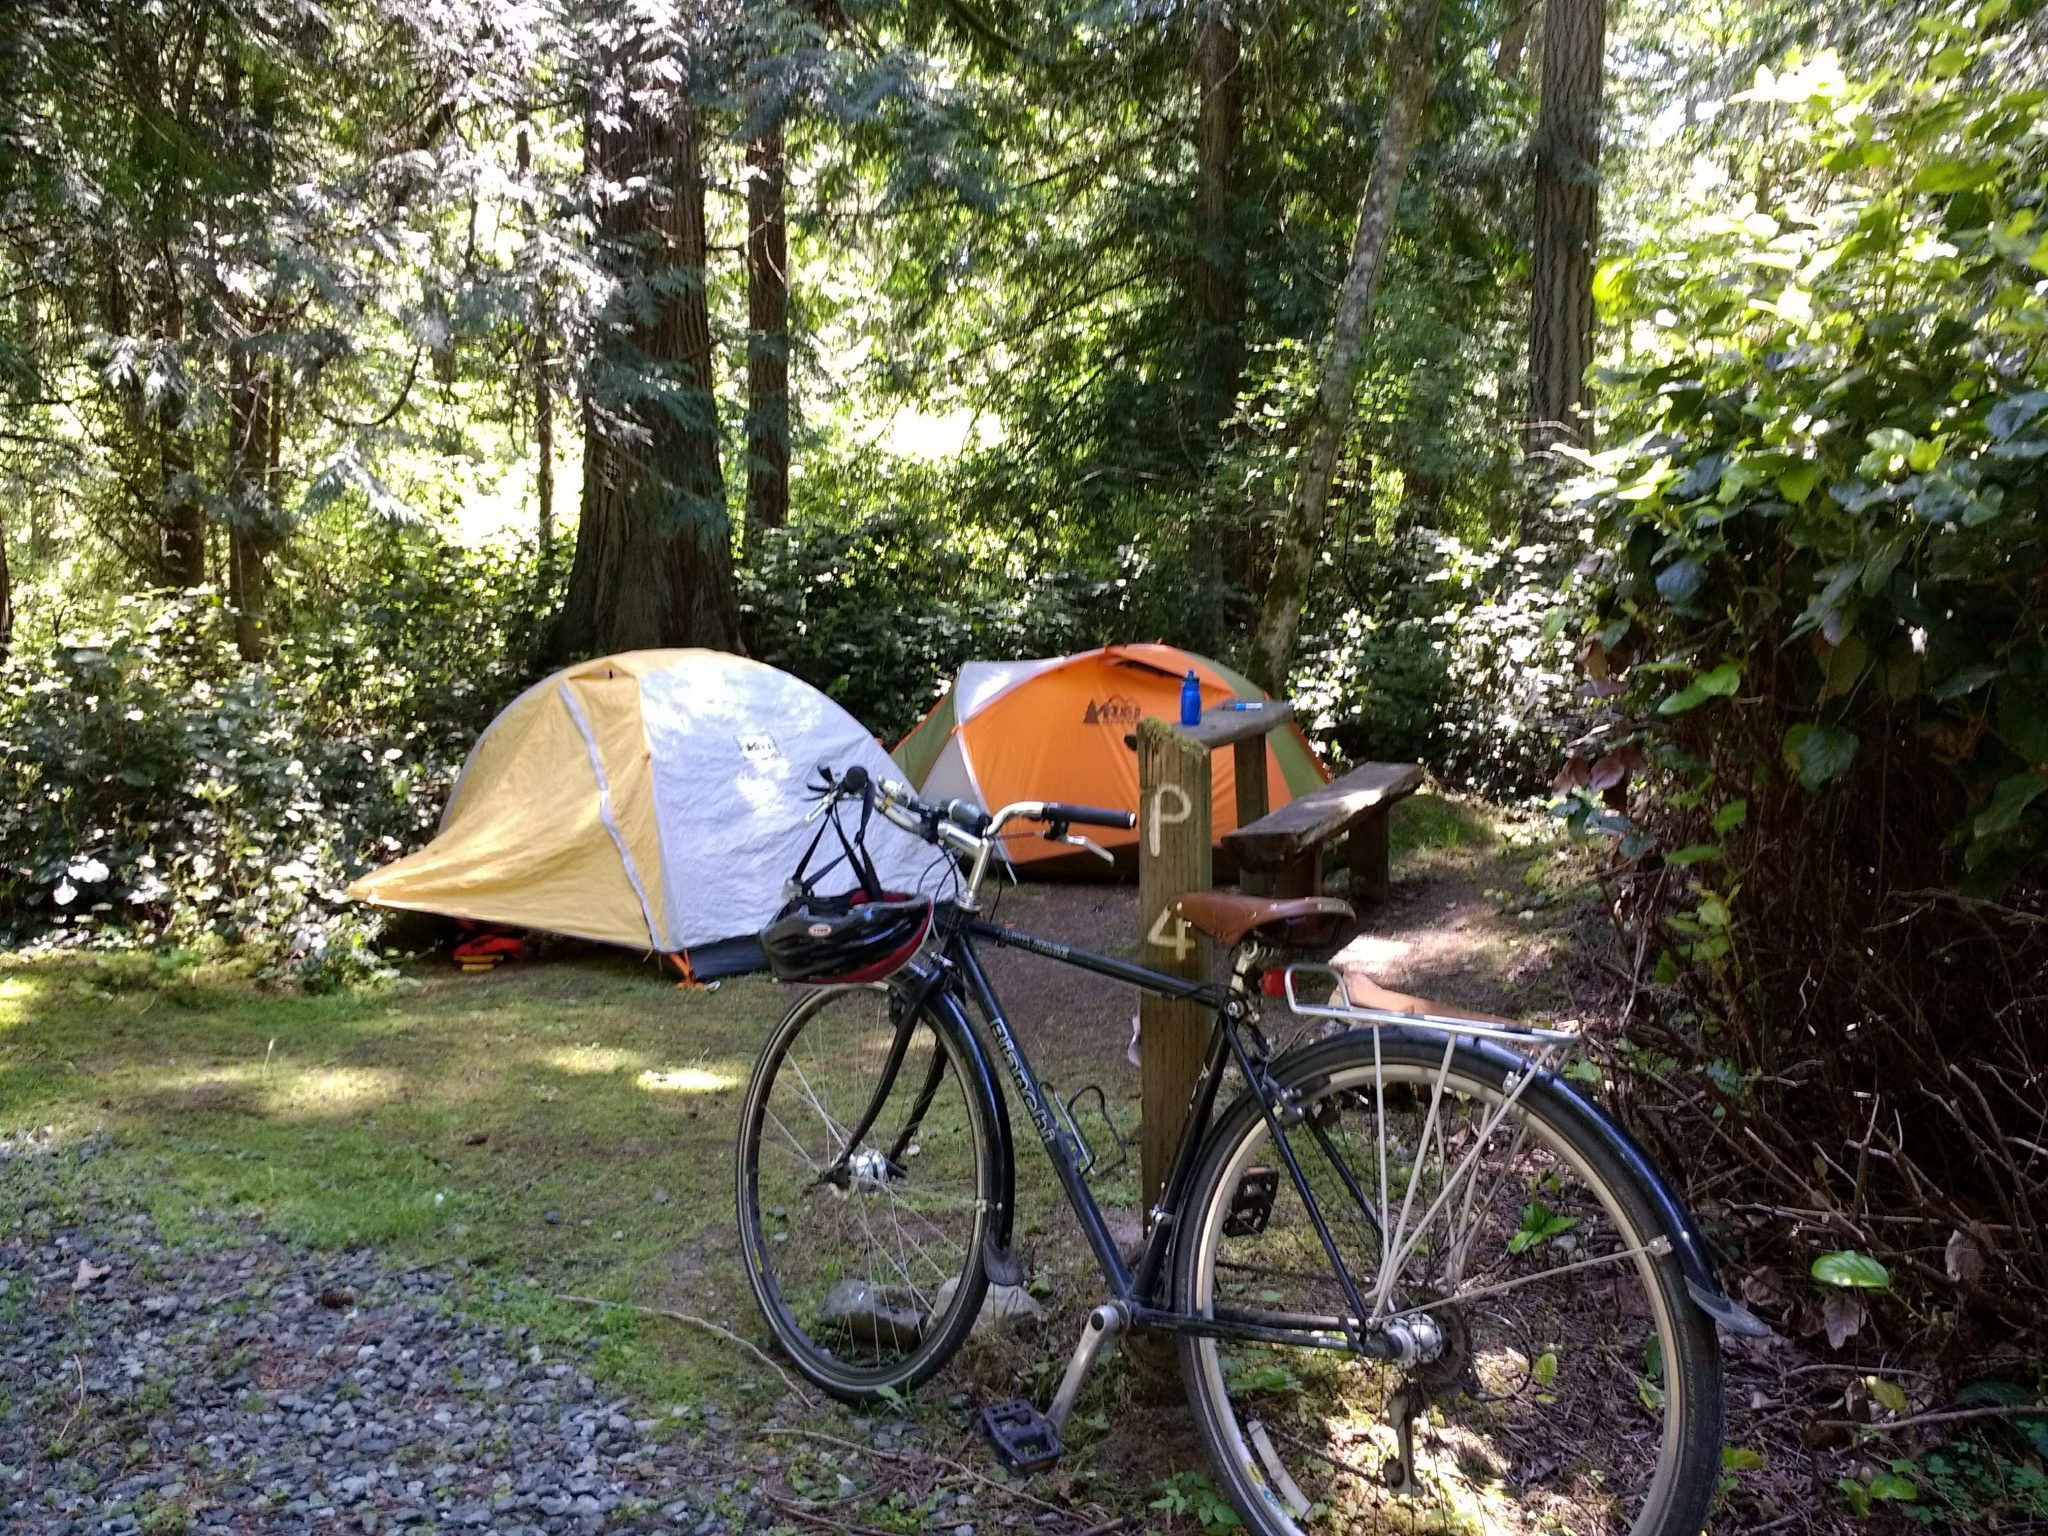 Lopez Island bike camping at Spencer Spit State park. It's a small campsite in the forest with two orange and white tents, a small bench and a bike leaning against a wooden post.